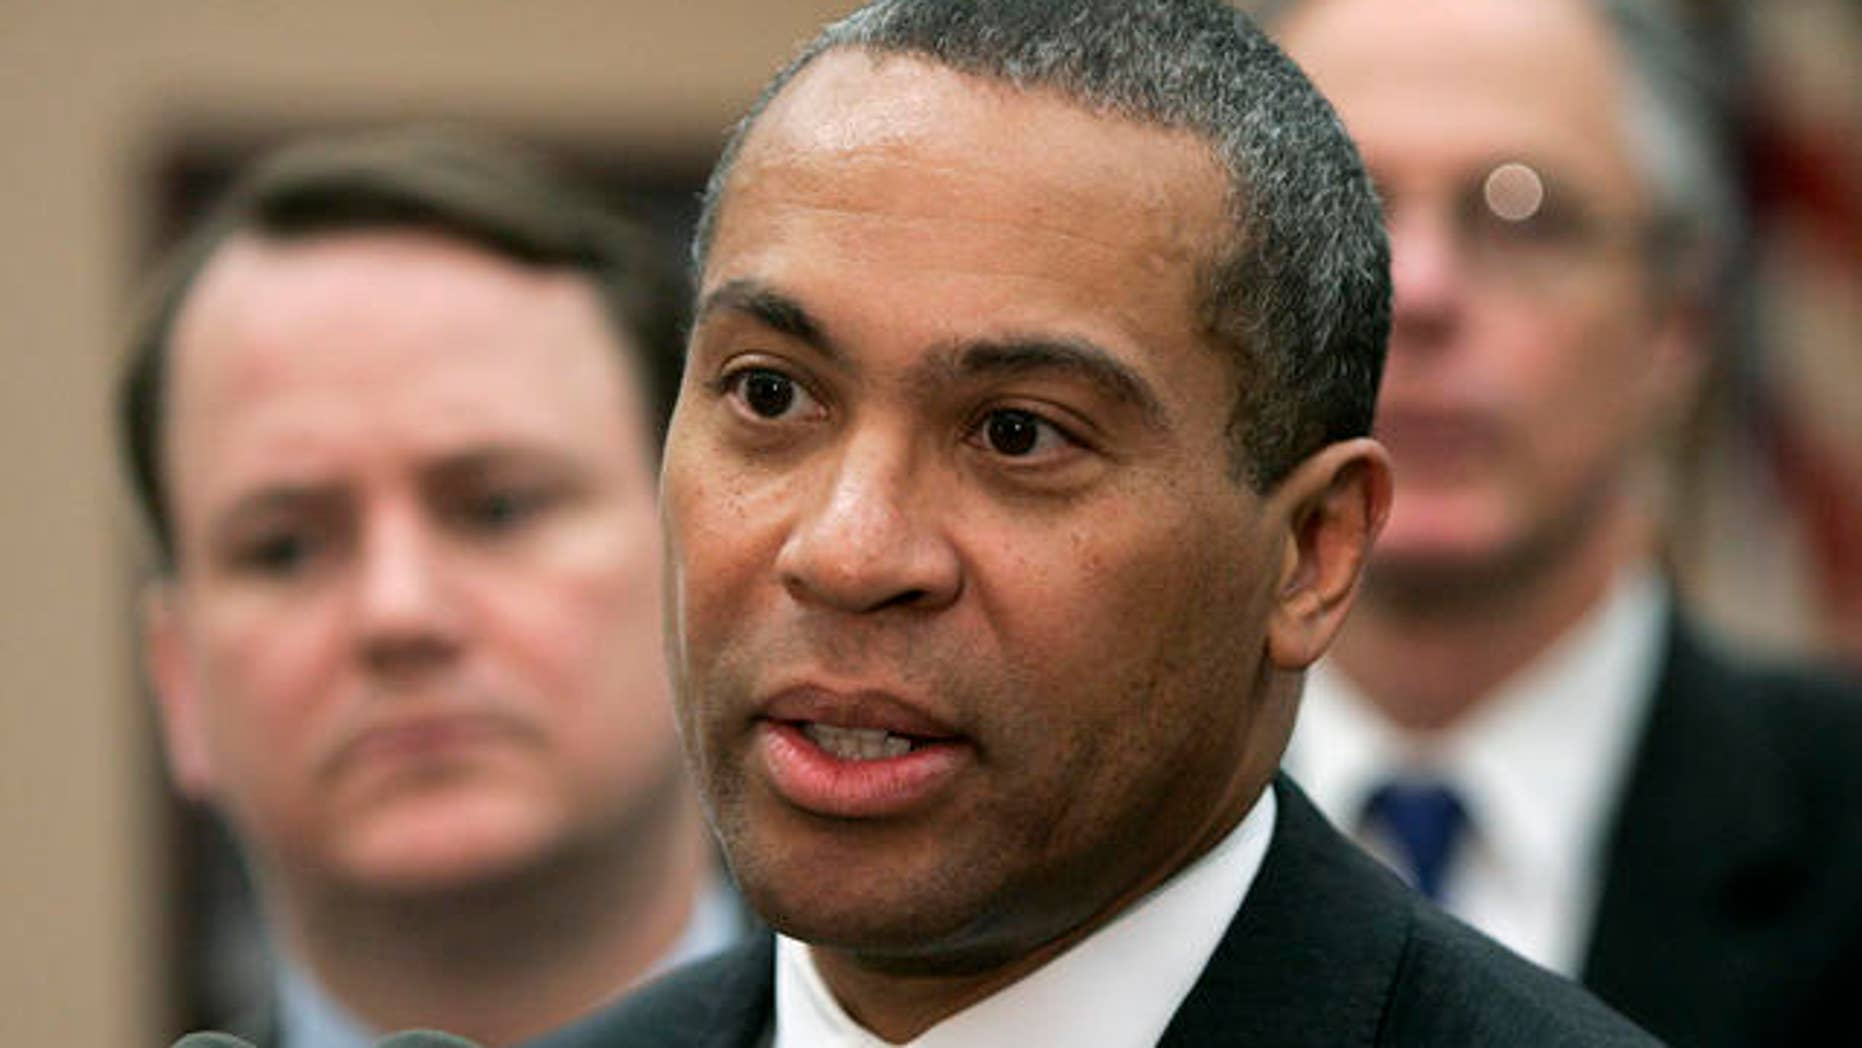 Deval Patrick joins 2020 field, faces daunting challenges